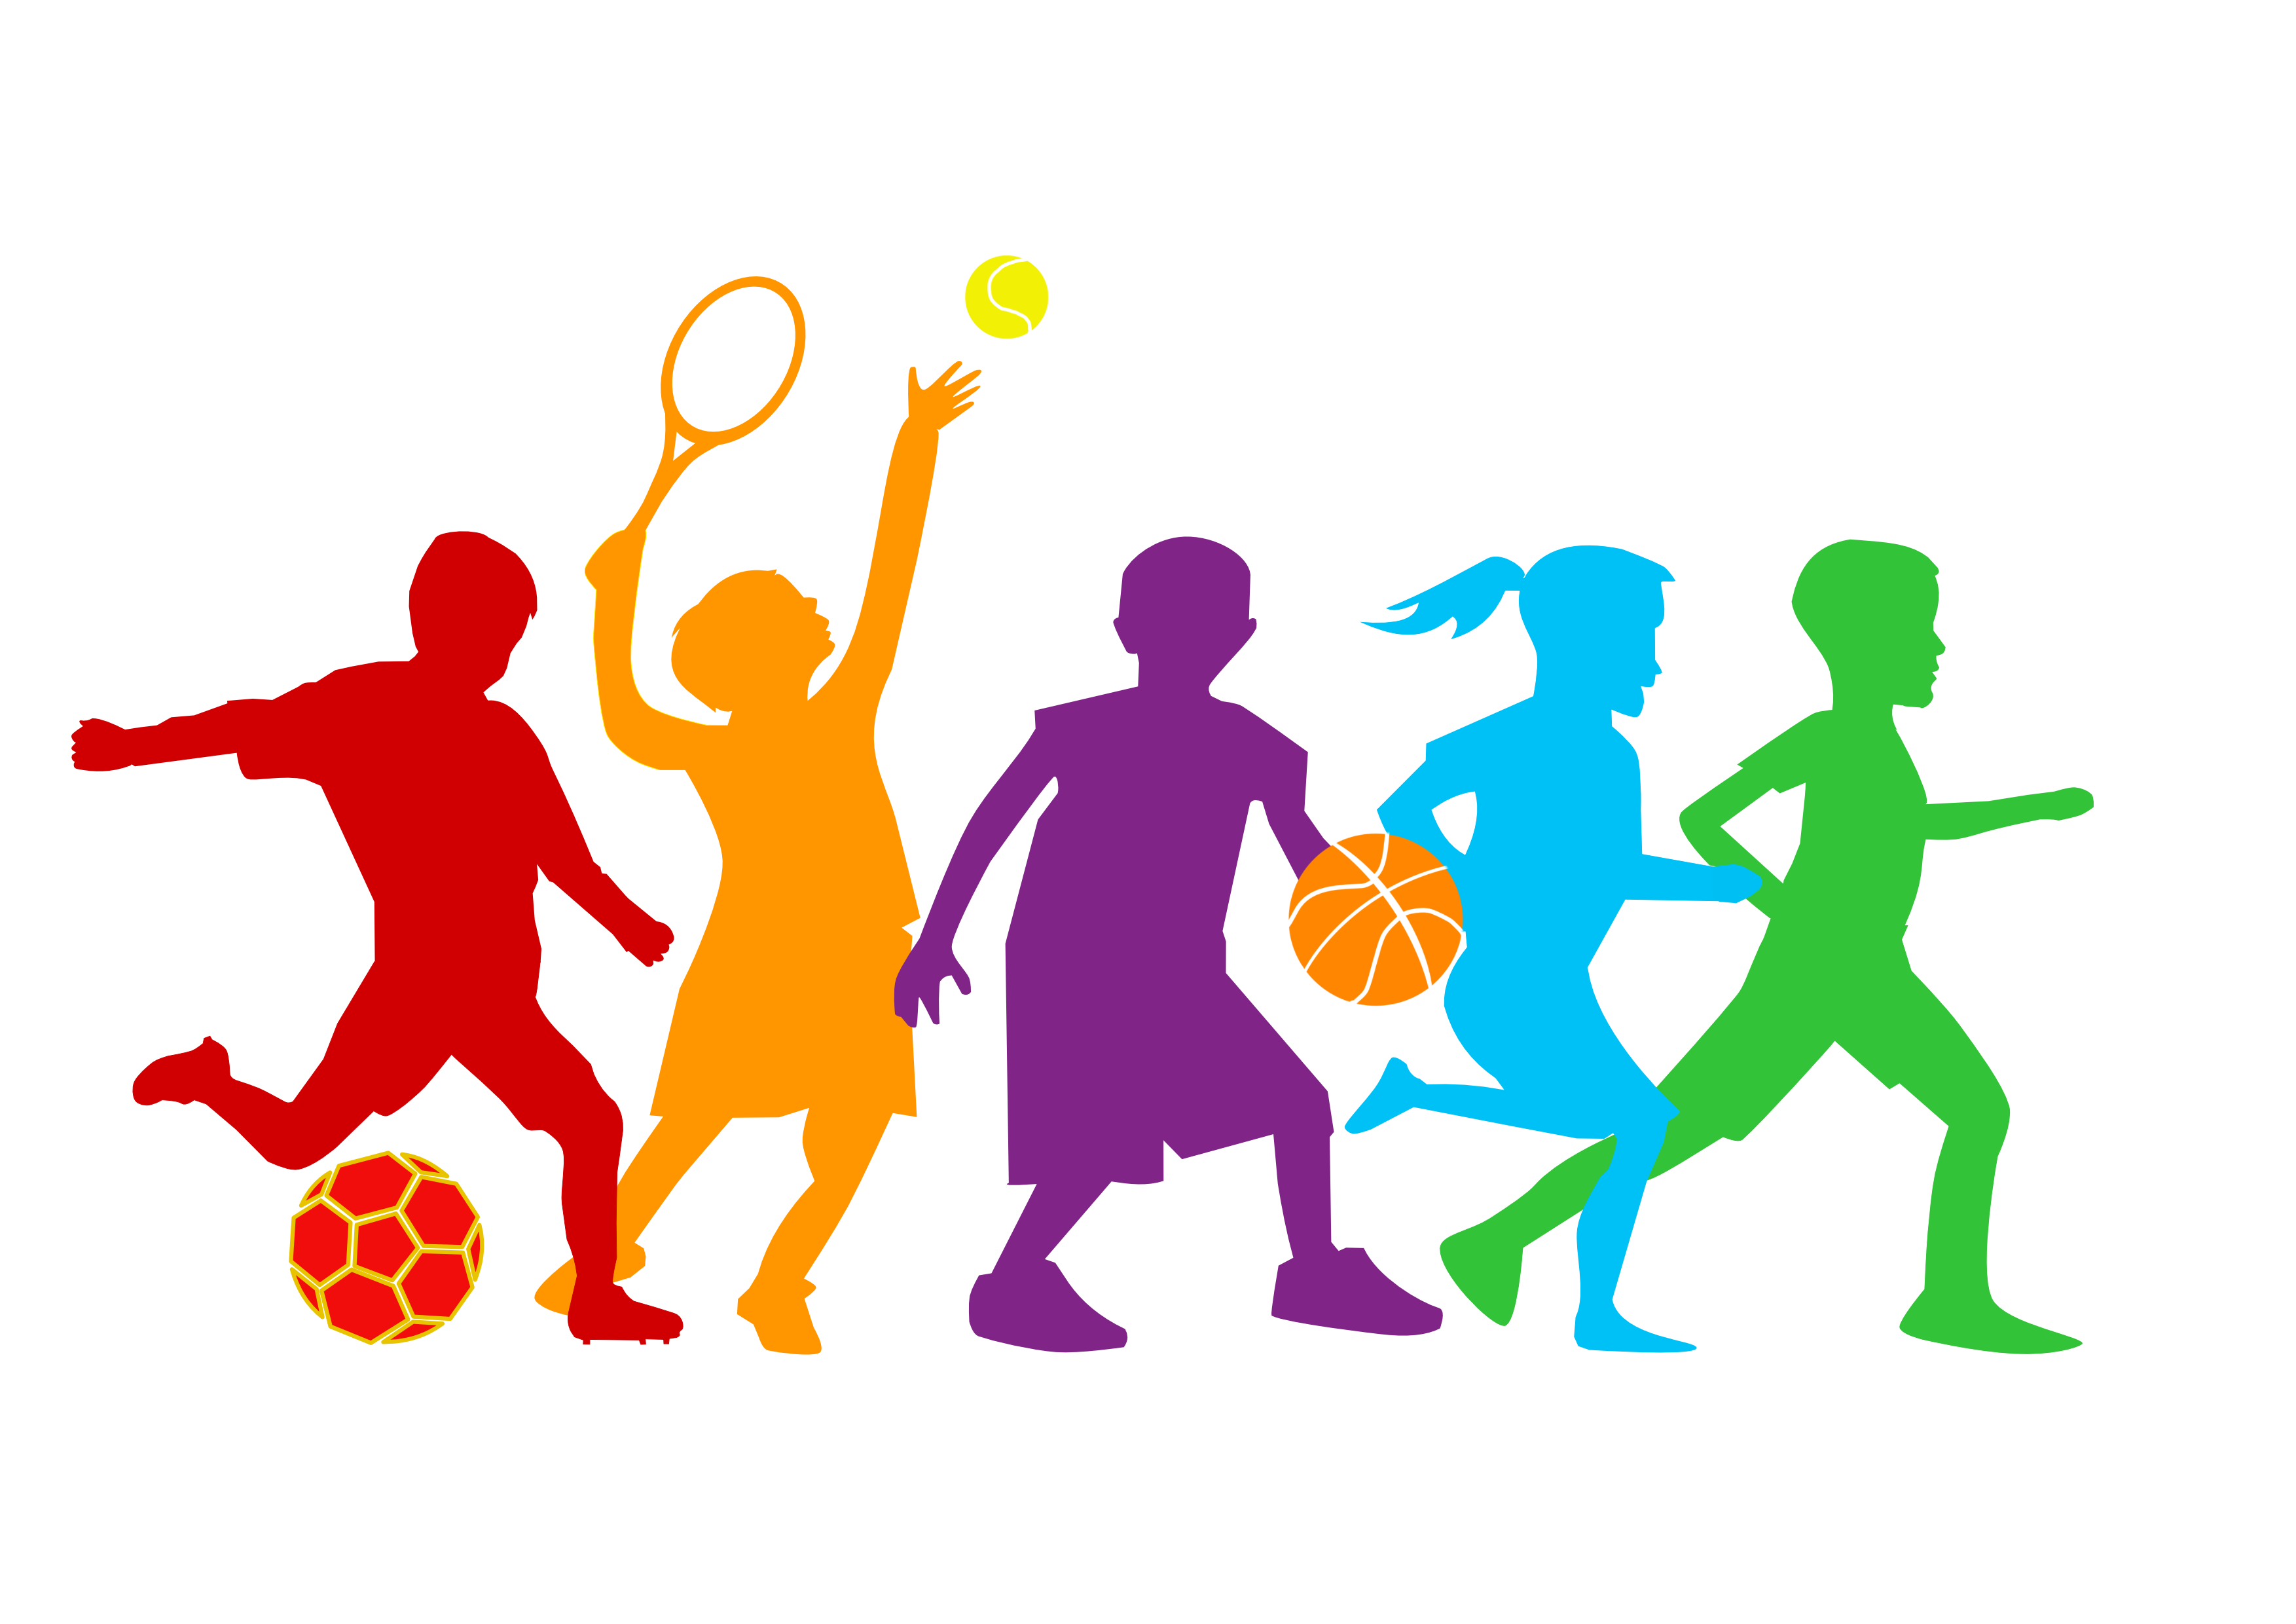 Sports Kids Backdrop: New Guide For Sports Coaches On ADHD Published